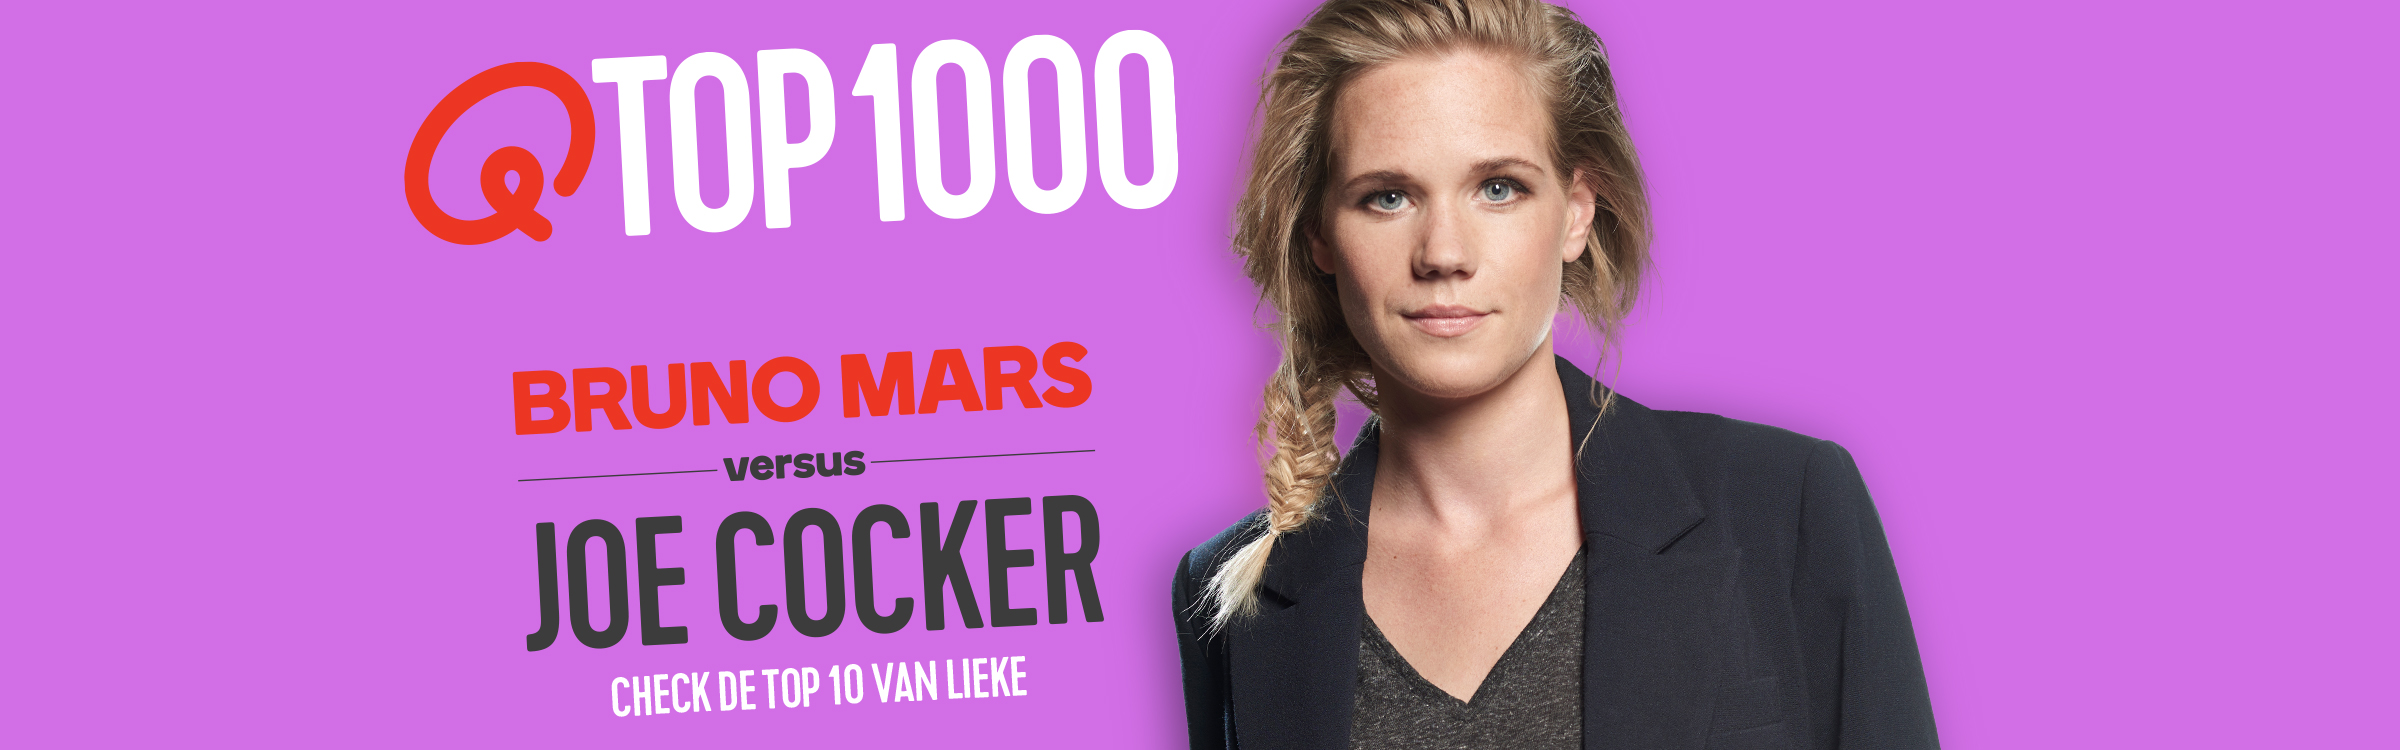 Qmusic actionheader top1000 djs lieke